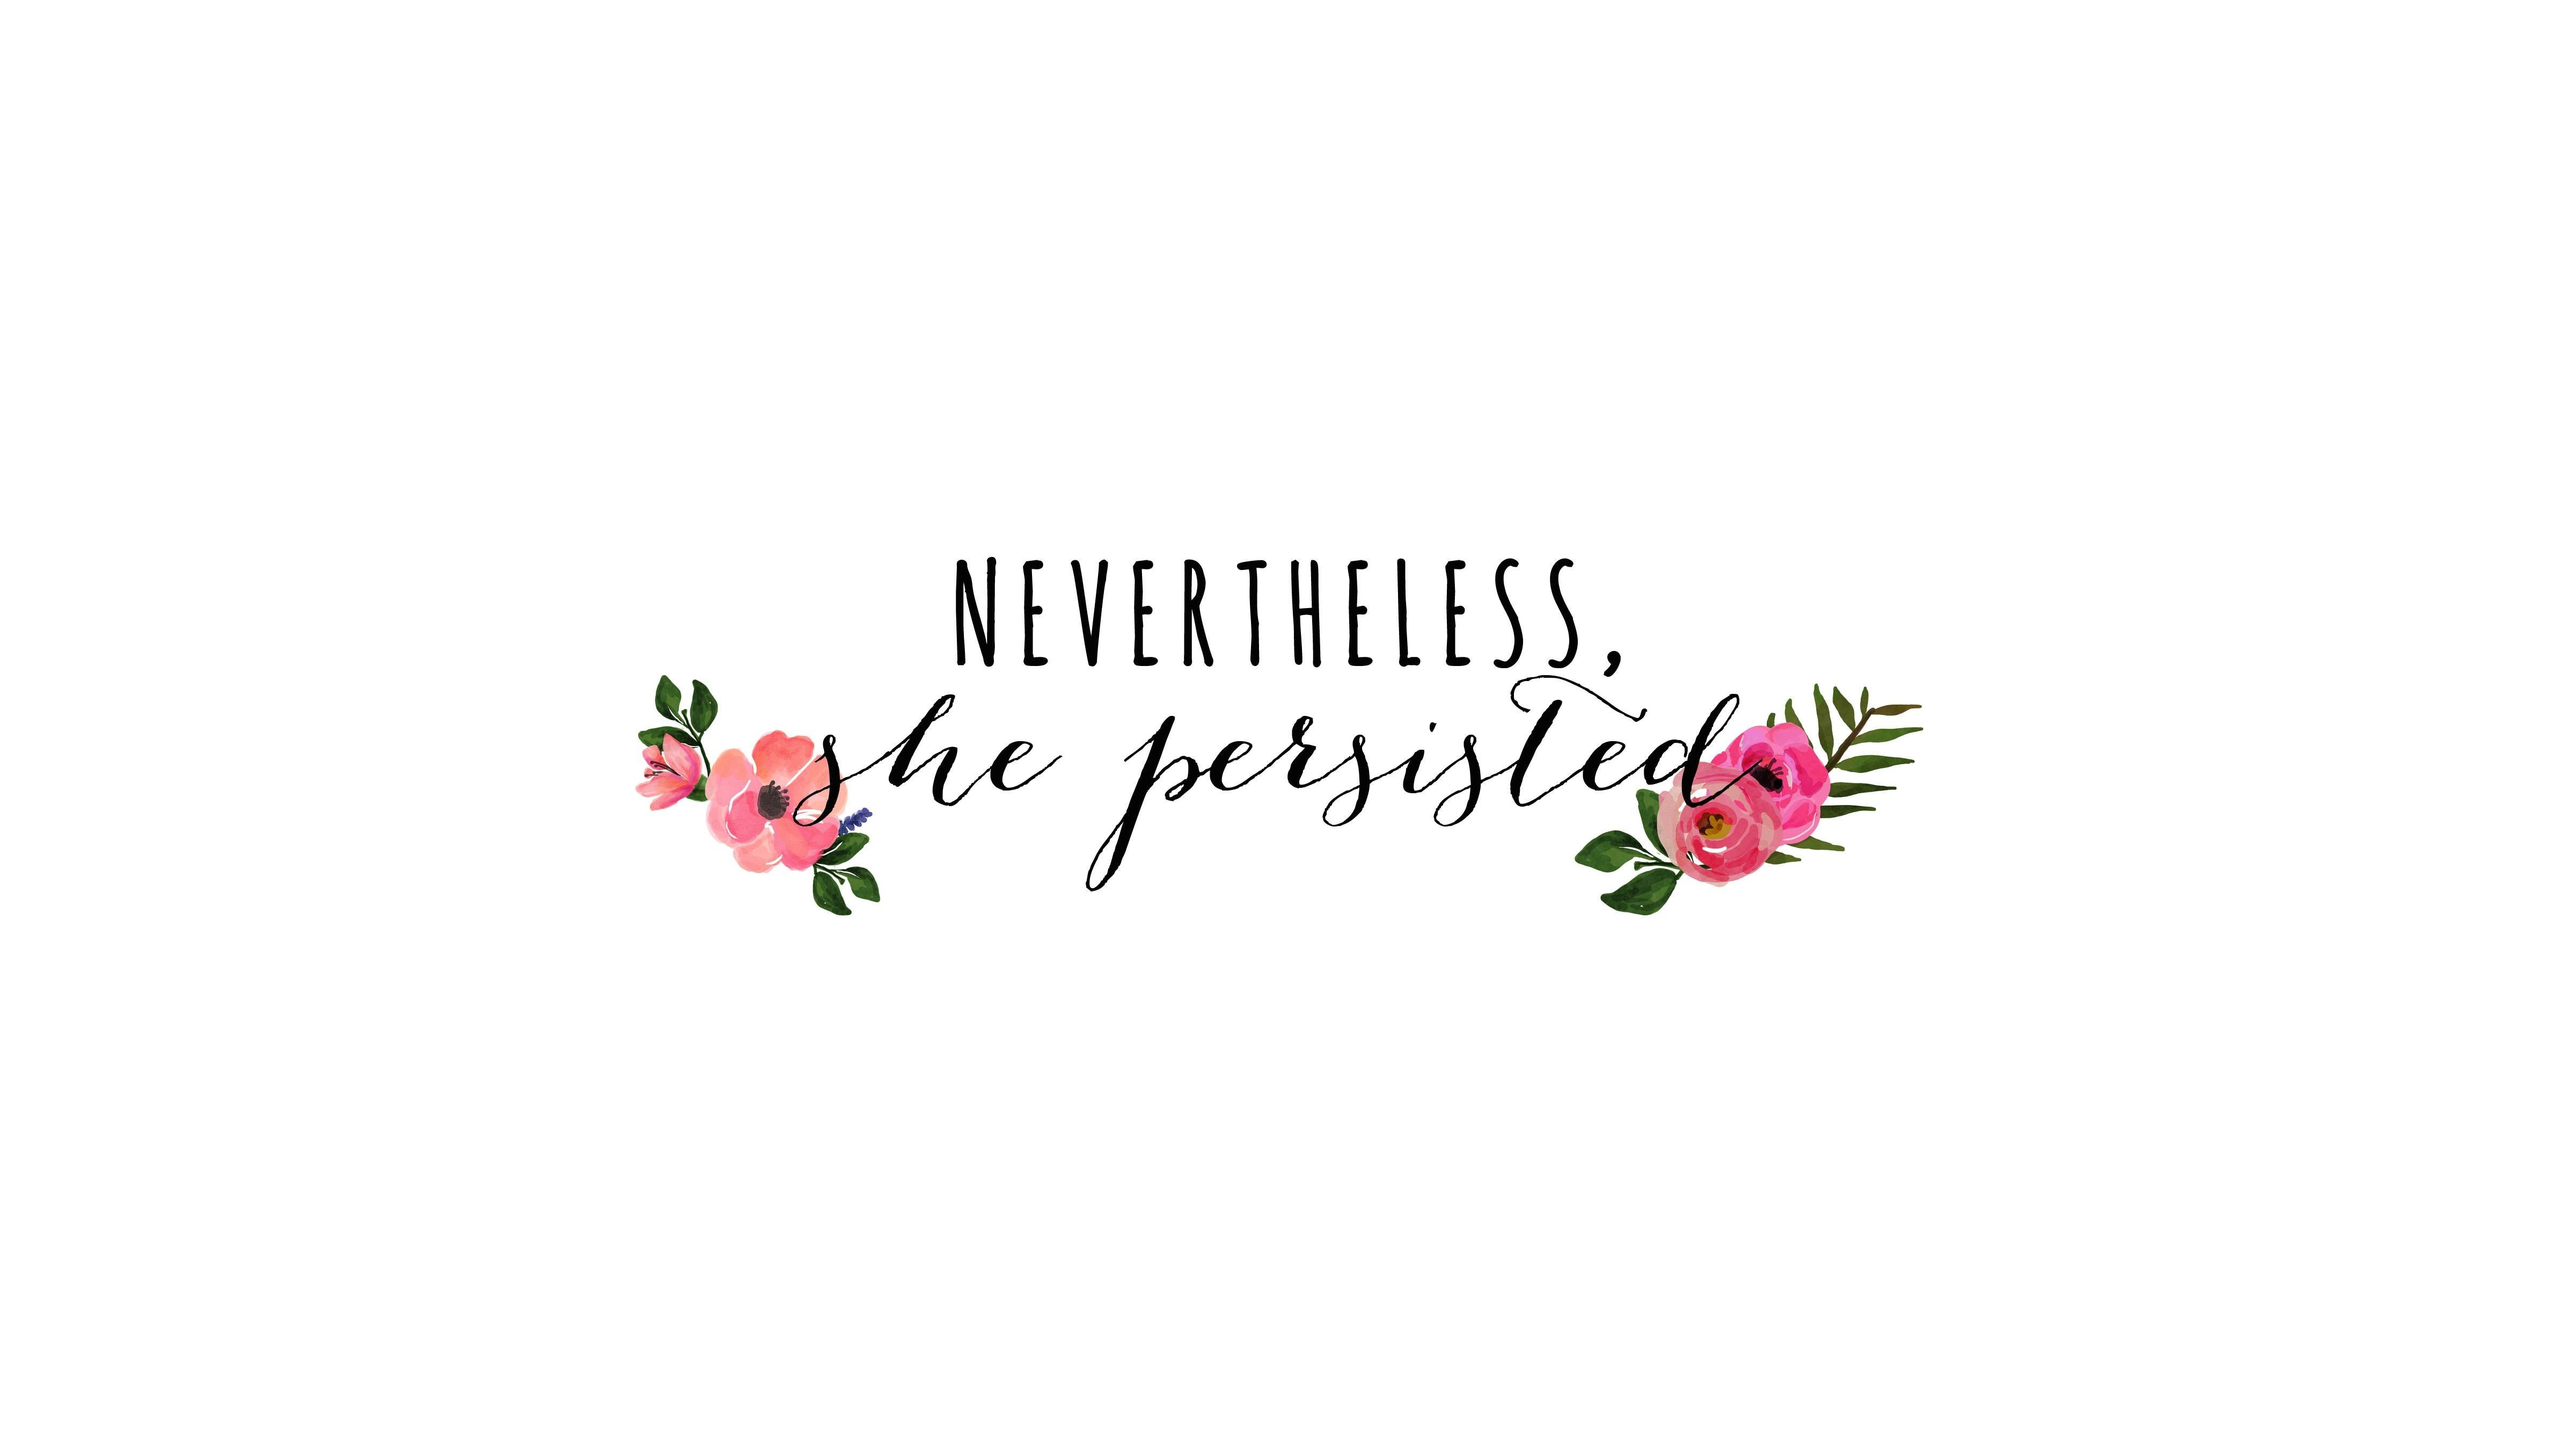 Pin By Cassandra Lawson Johnson On Inspiration Motivations Motivational Quotes Wallpaper Some Inspirational Quotes Inspirational Quotes Wallpapers